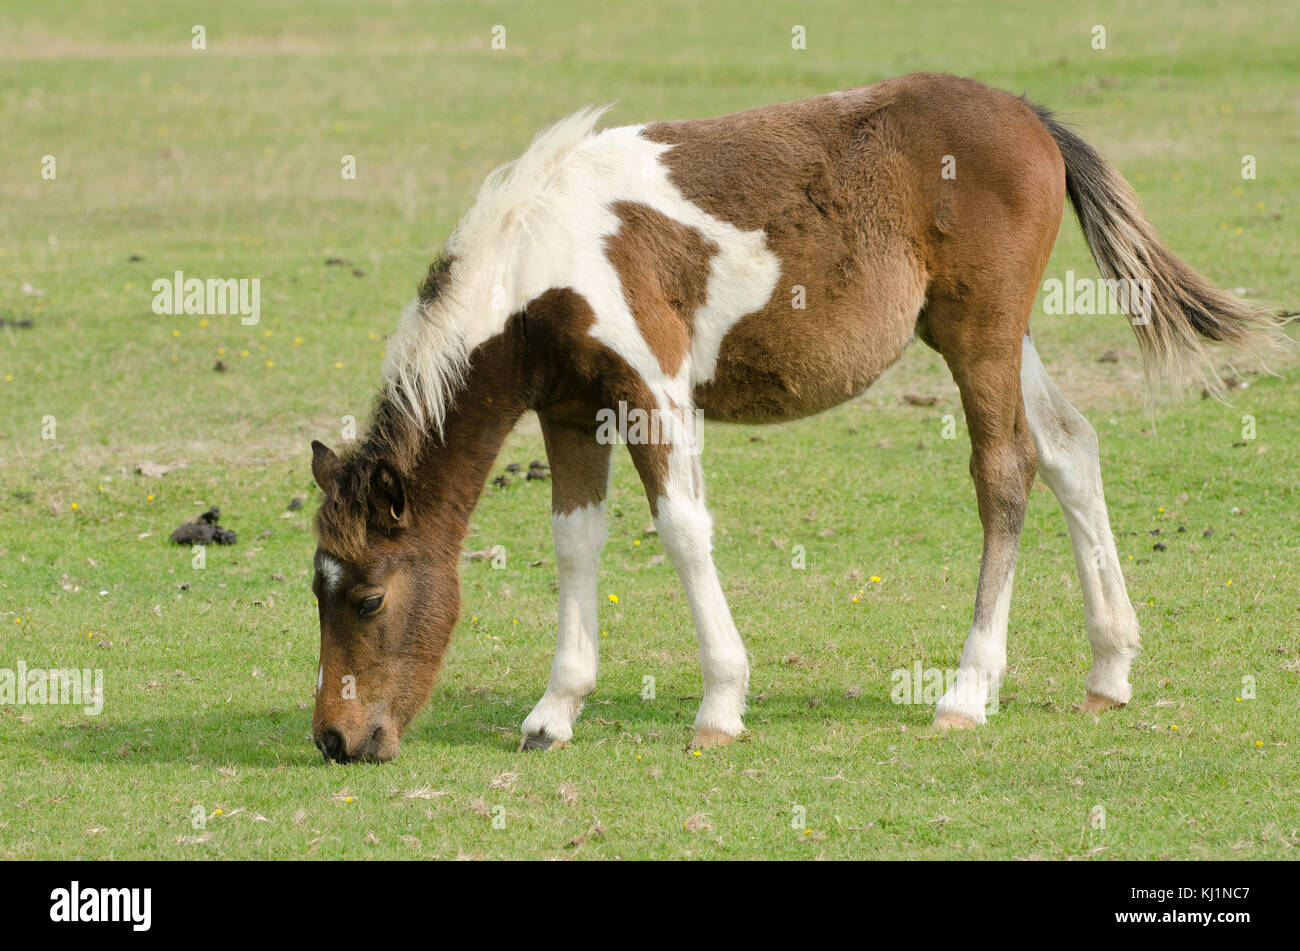 New Forest Ponies out grazing one of the popular sites around Hampshire - Stock Image